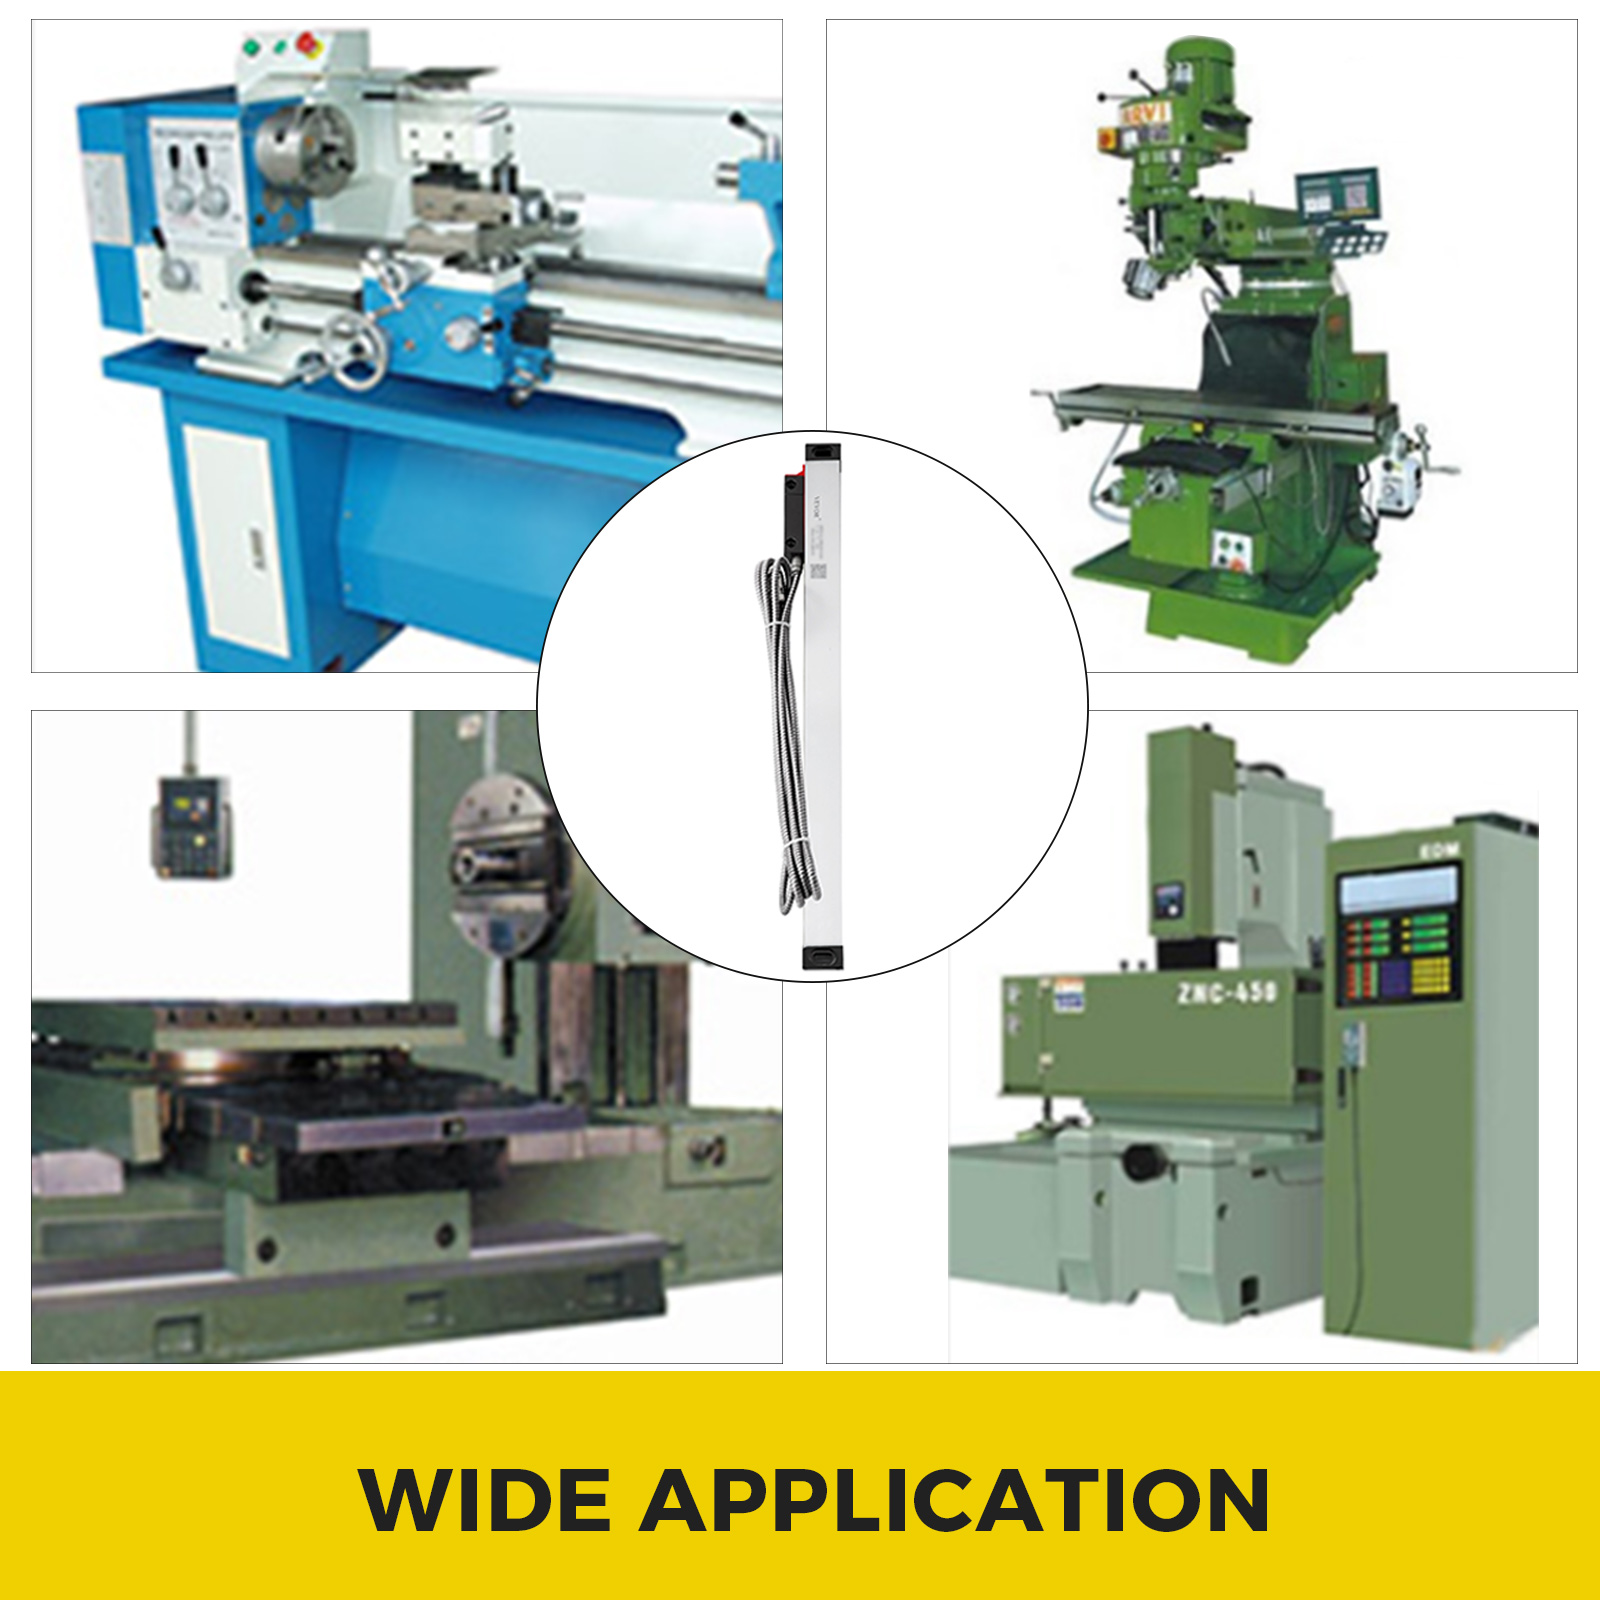 2-3-Axis-Digital-Readout-Linear-Scale-Double-Seal-5-Bearing-System-Grinding thumbnail 103